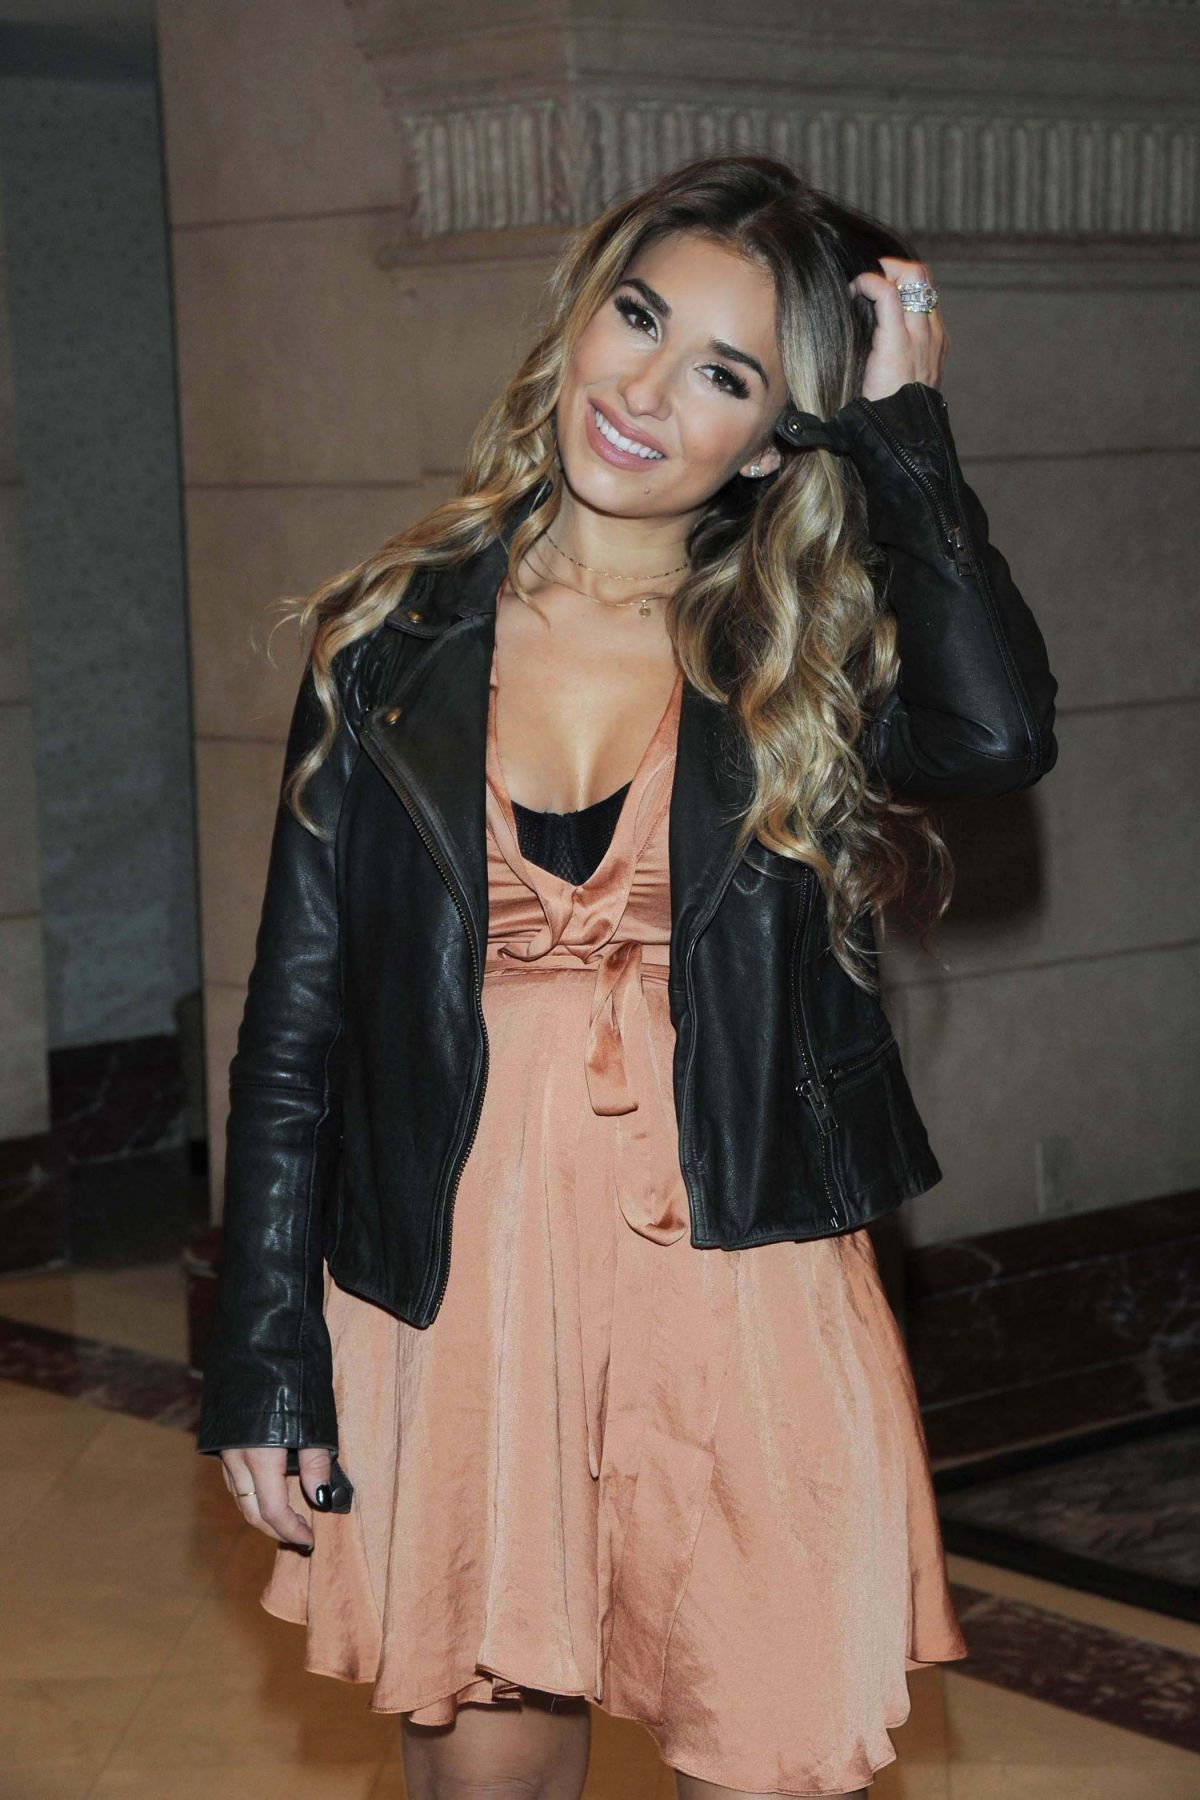 Jessie James Decker leaves Offices of Her Clothing Line